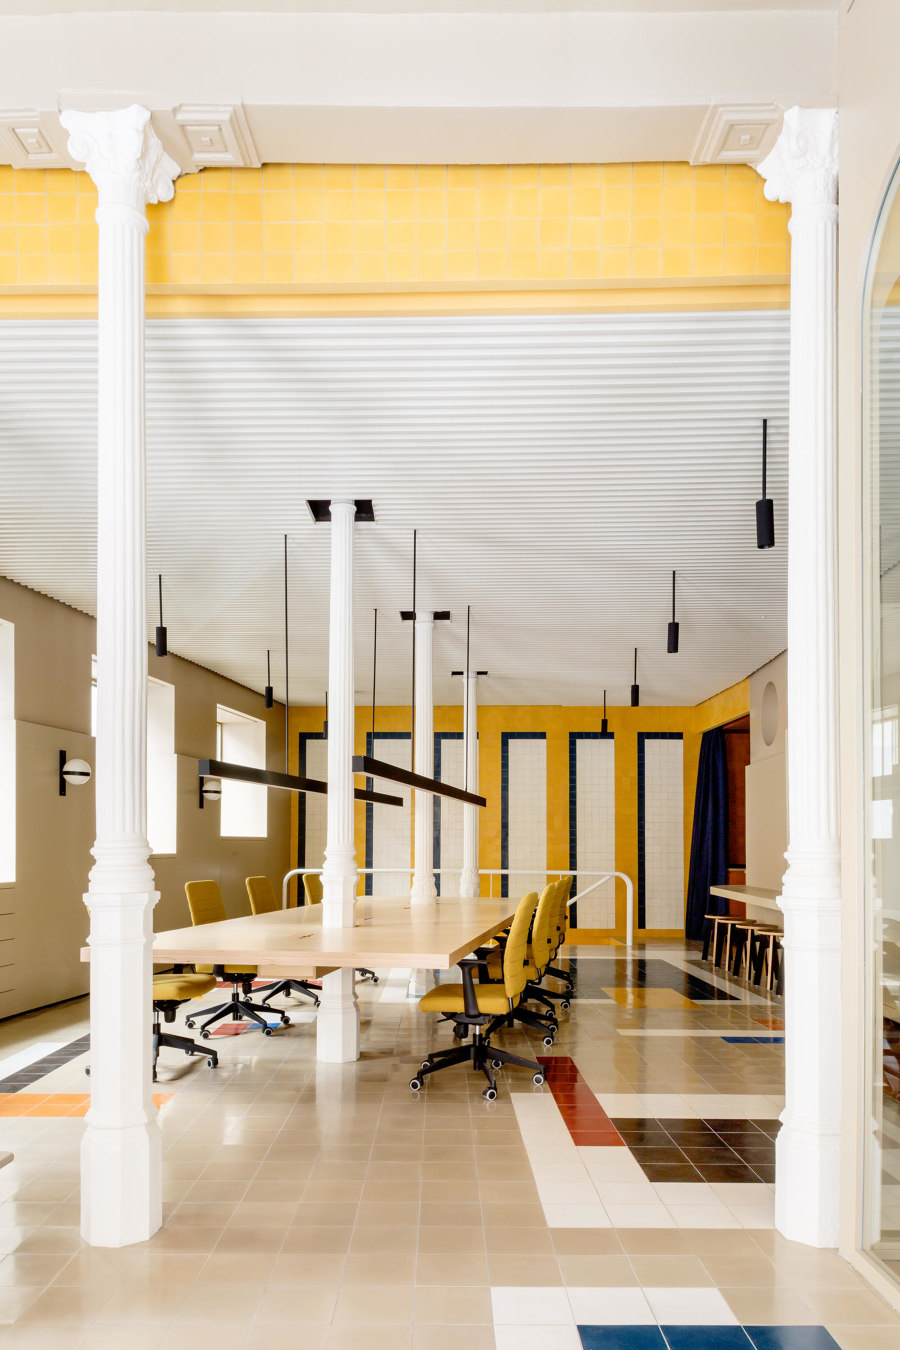 Re:work – adaptive reuse in office interiors | News